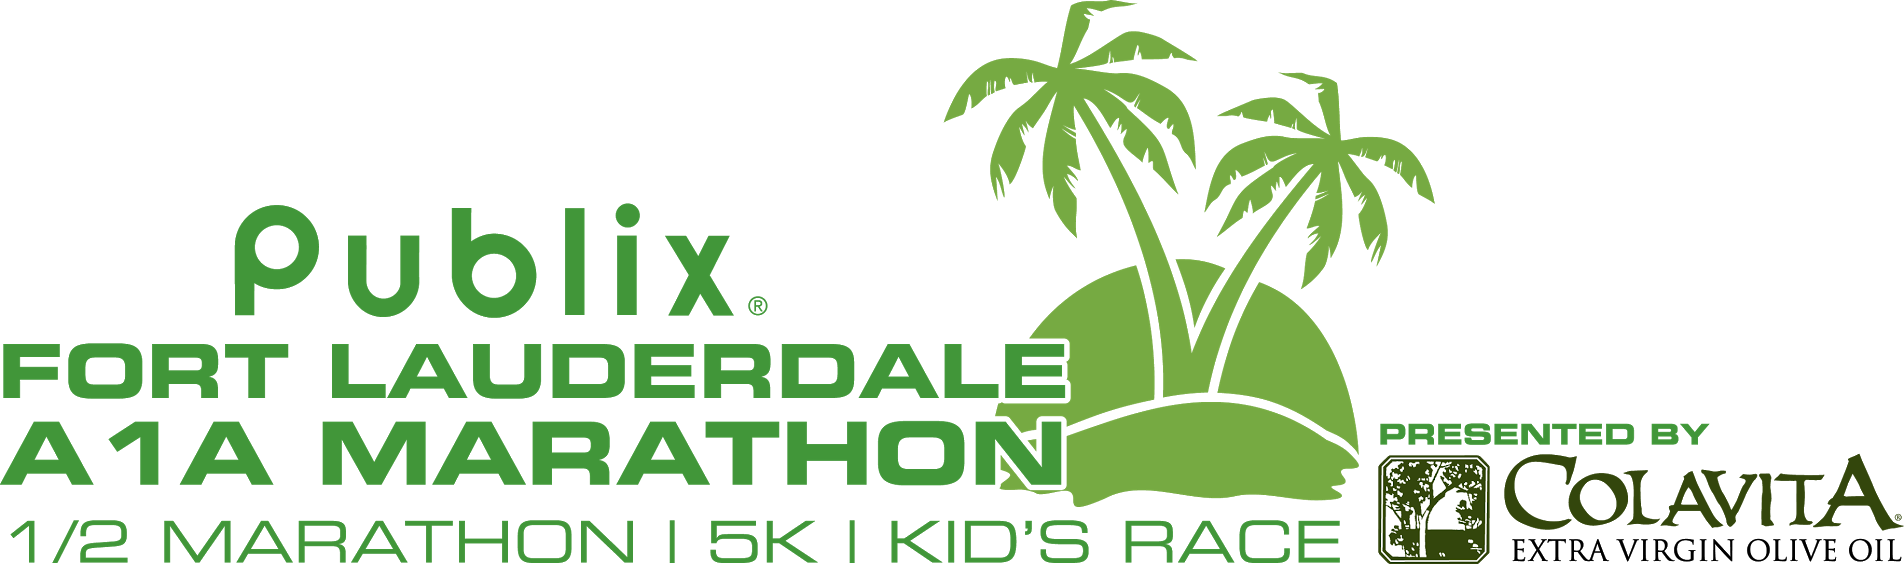 A1A Marathon & Half weekend events (Upcoming race in